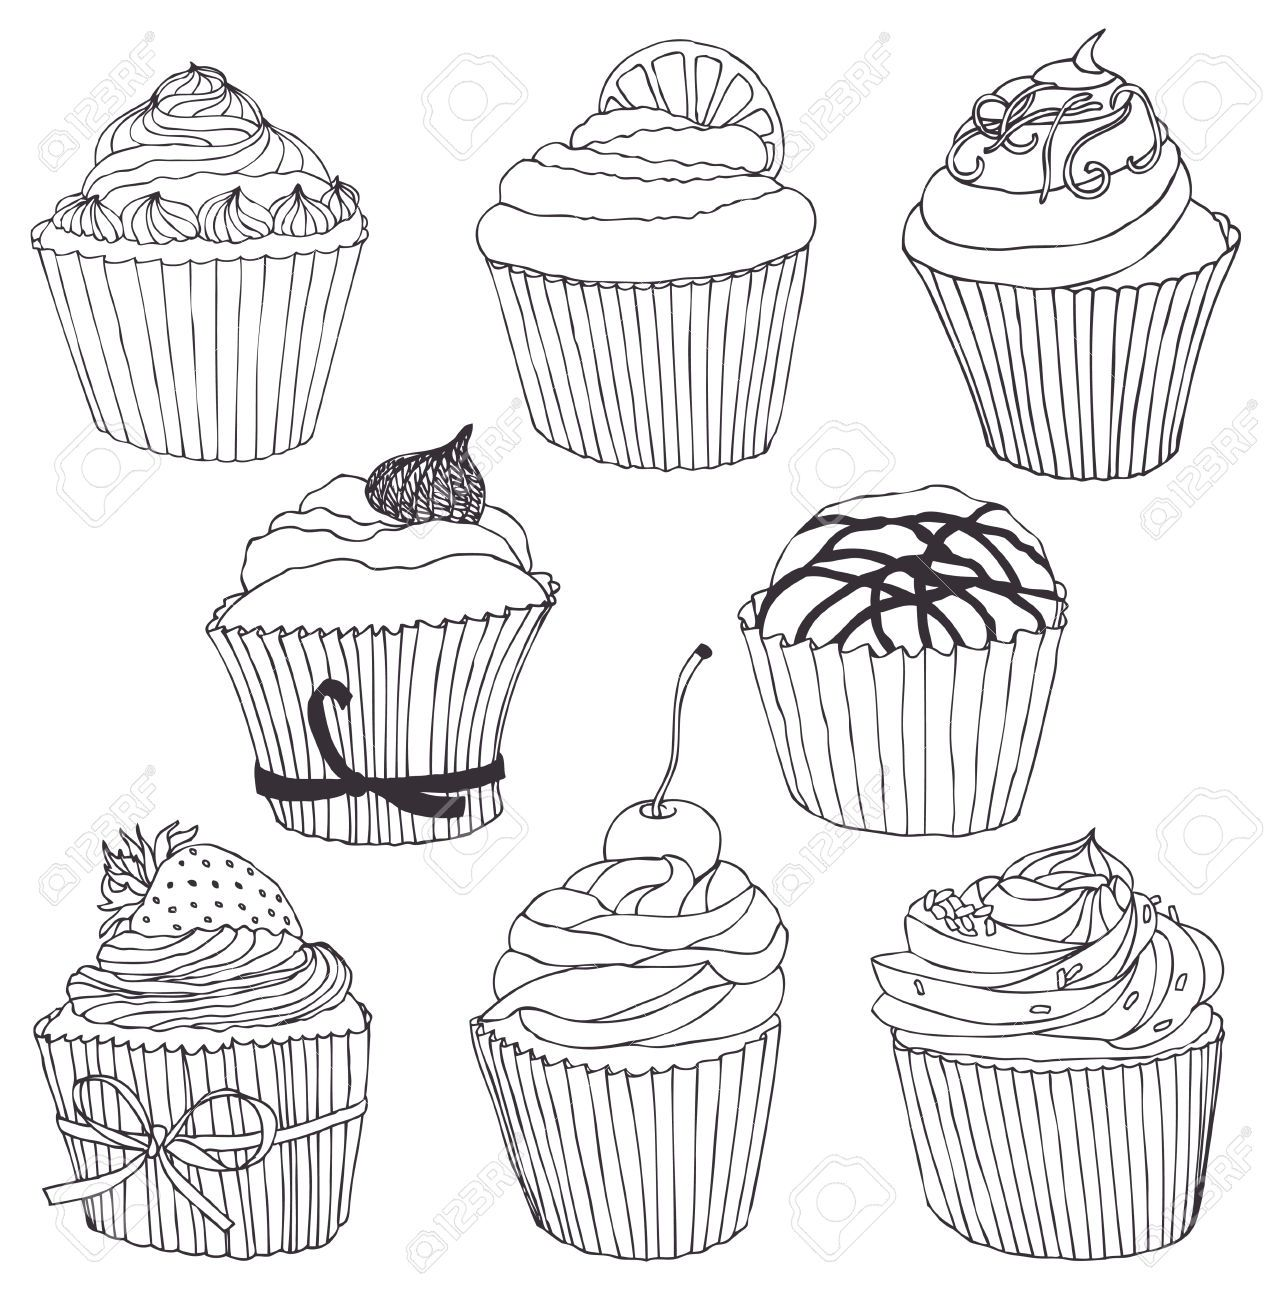 cupcake drawing black and white google search food